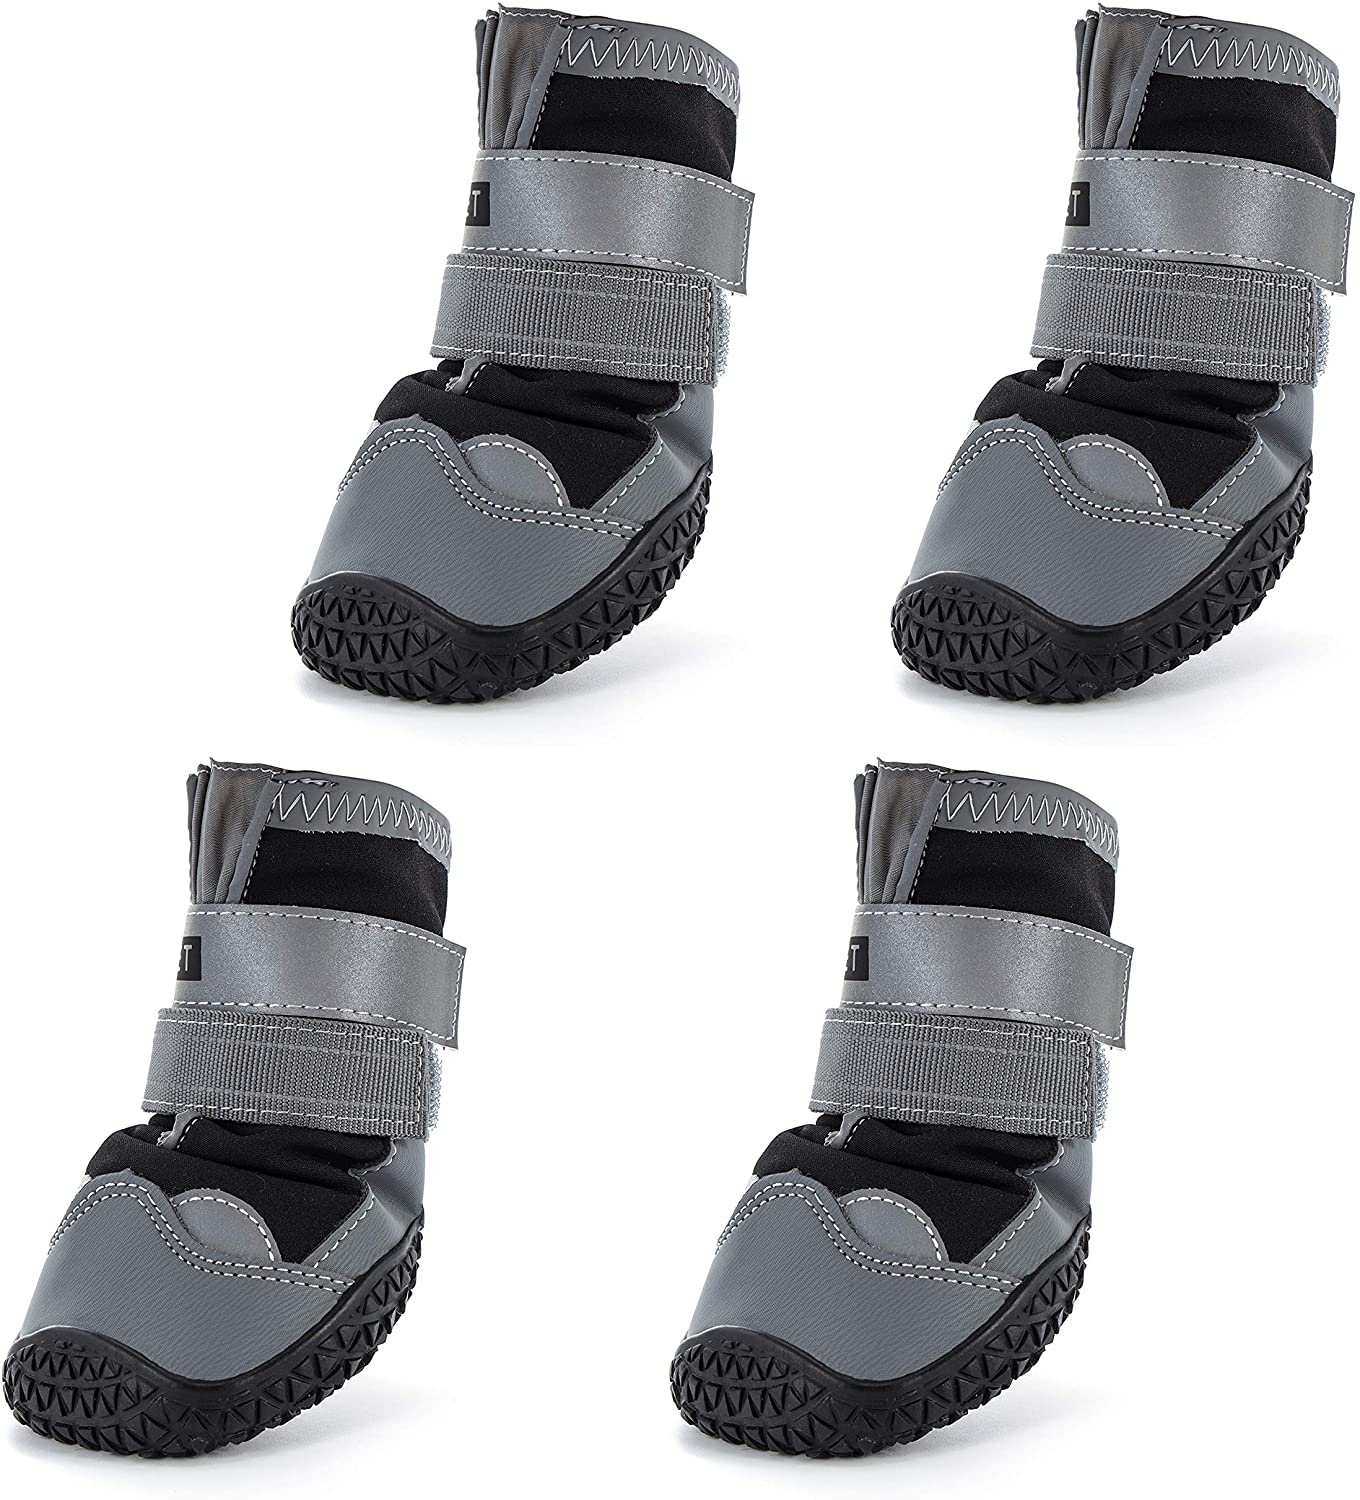 Hcpet Dog Boots Waterproof for Dog with Reflective Velcro Rugged Anti-Slip Sole and Skid-Proof Outdoor Paw Wear for Medium to Large Dogs 4Ps